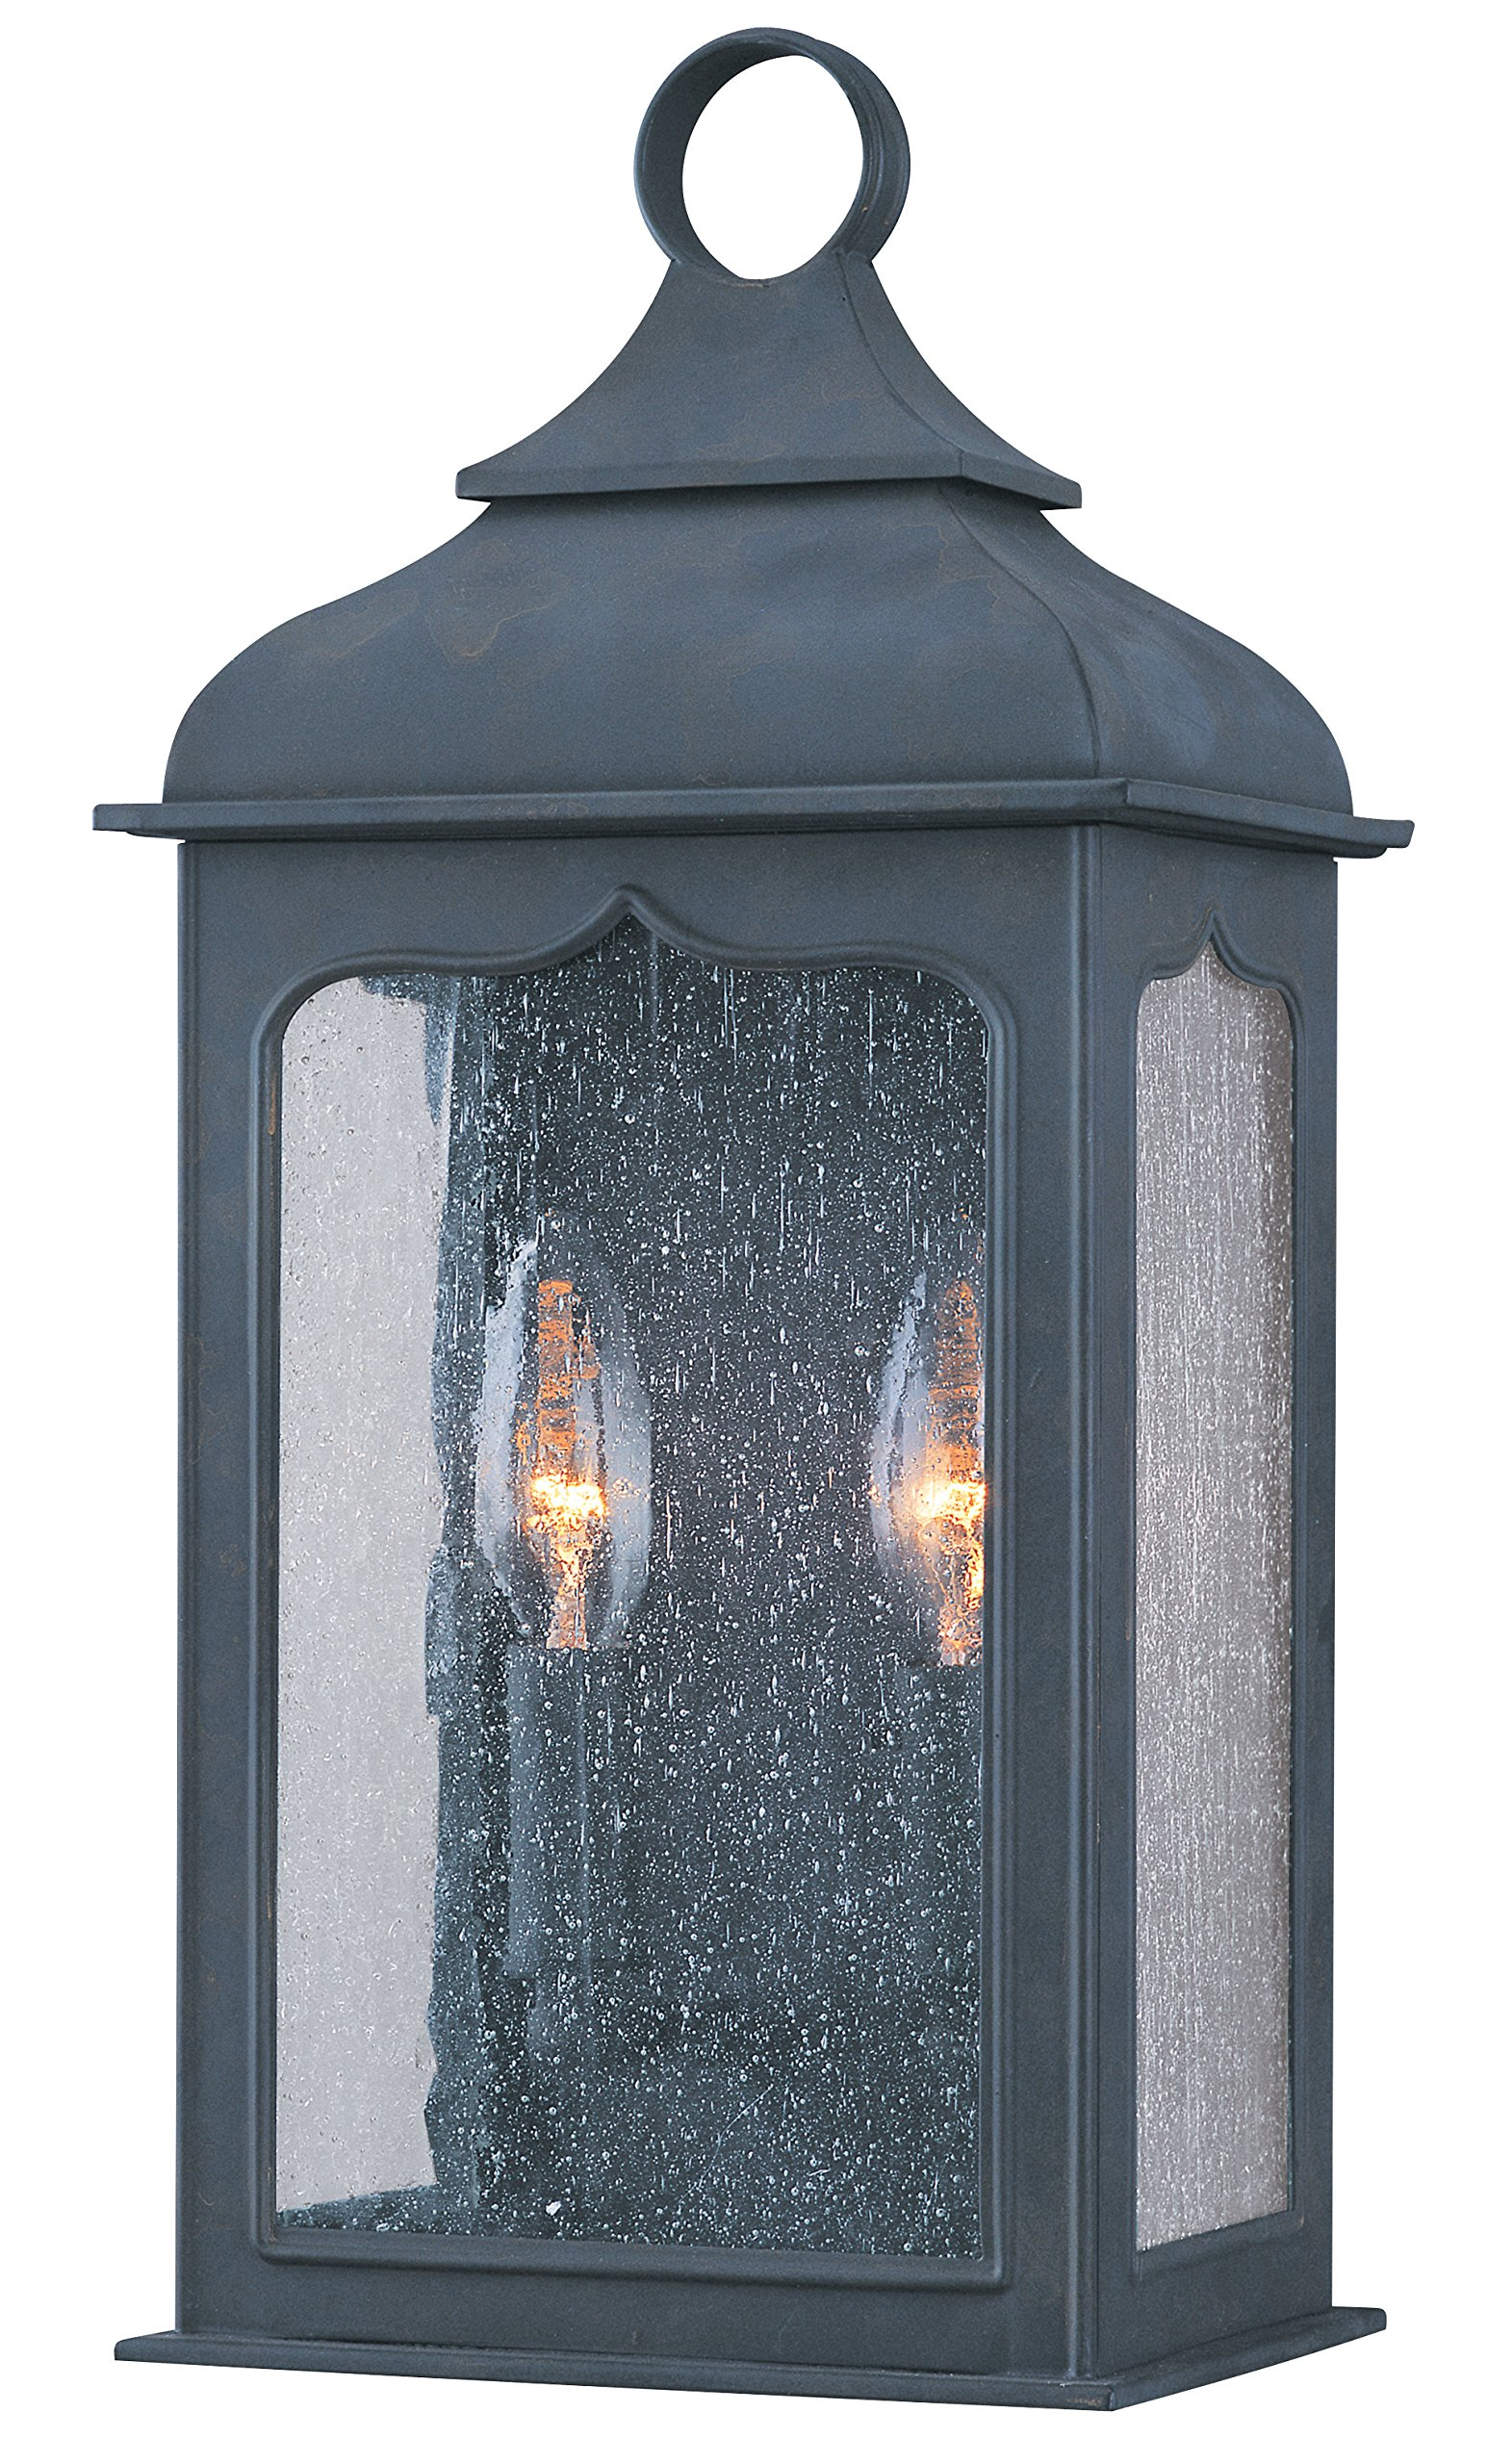 Troy Lighting Henry Street 15''H 2-Light Outdoor Wall Lantern - Colonial Iron Finish with Clear Seeded Glass